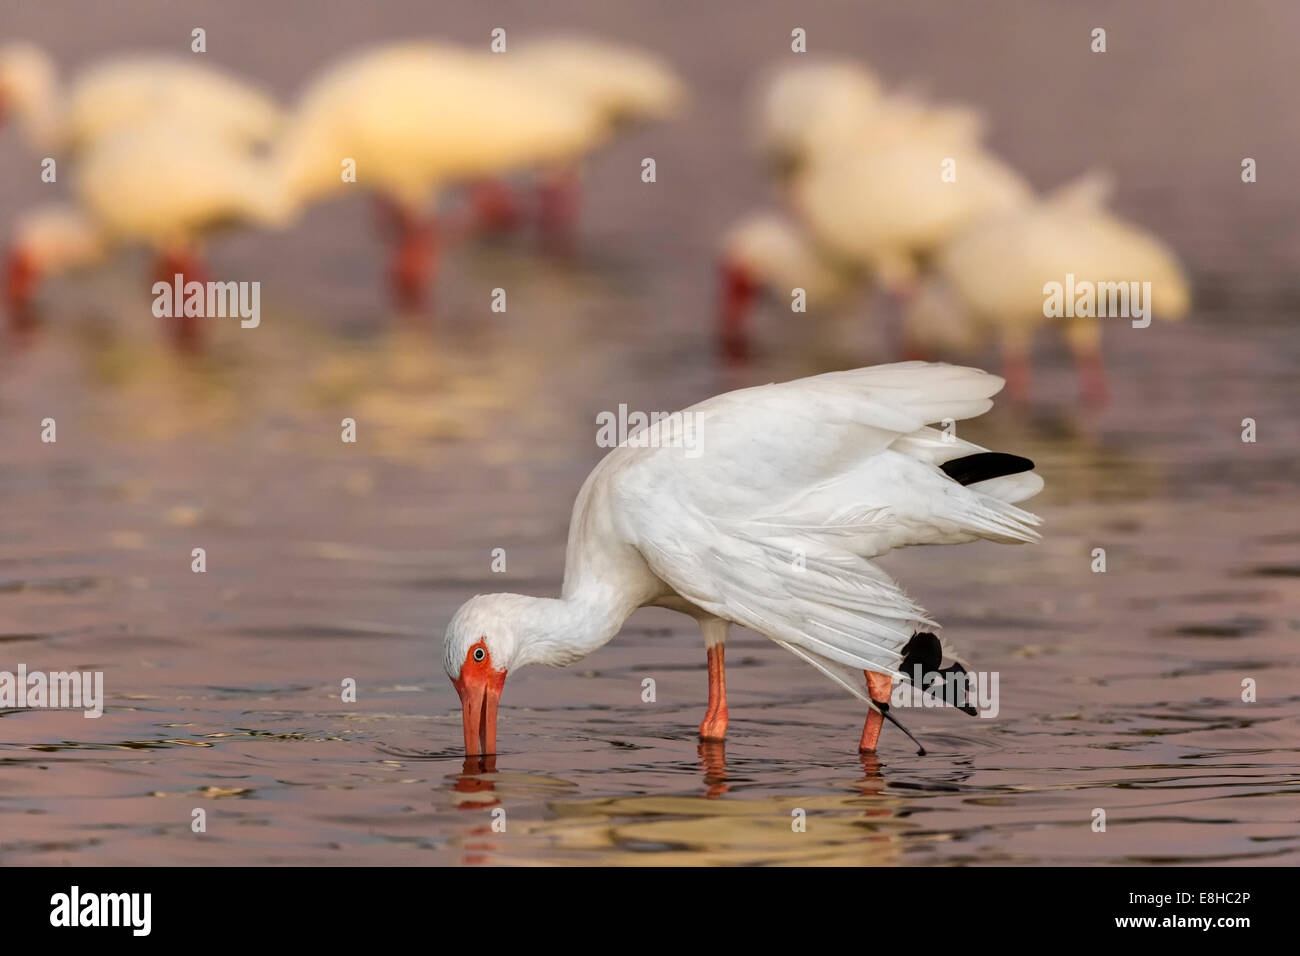 White Ibis by moonlight - Stock Image